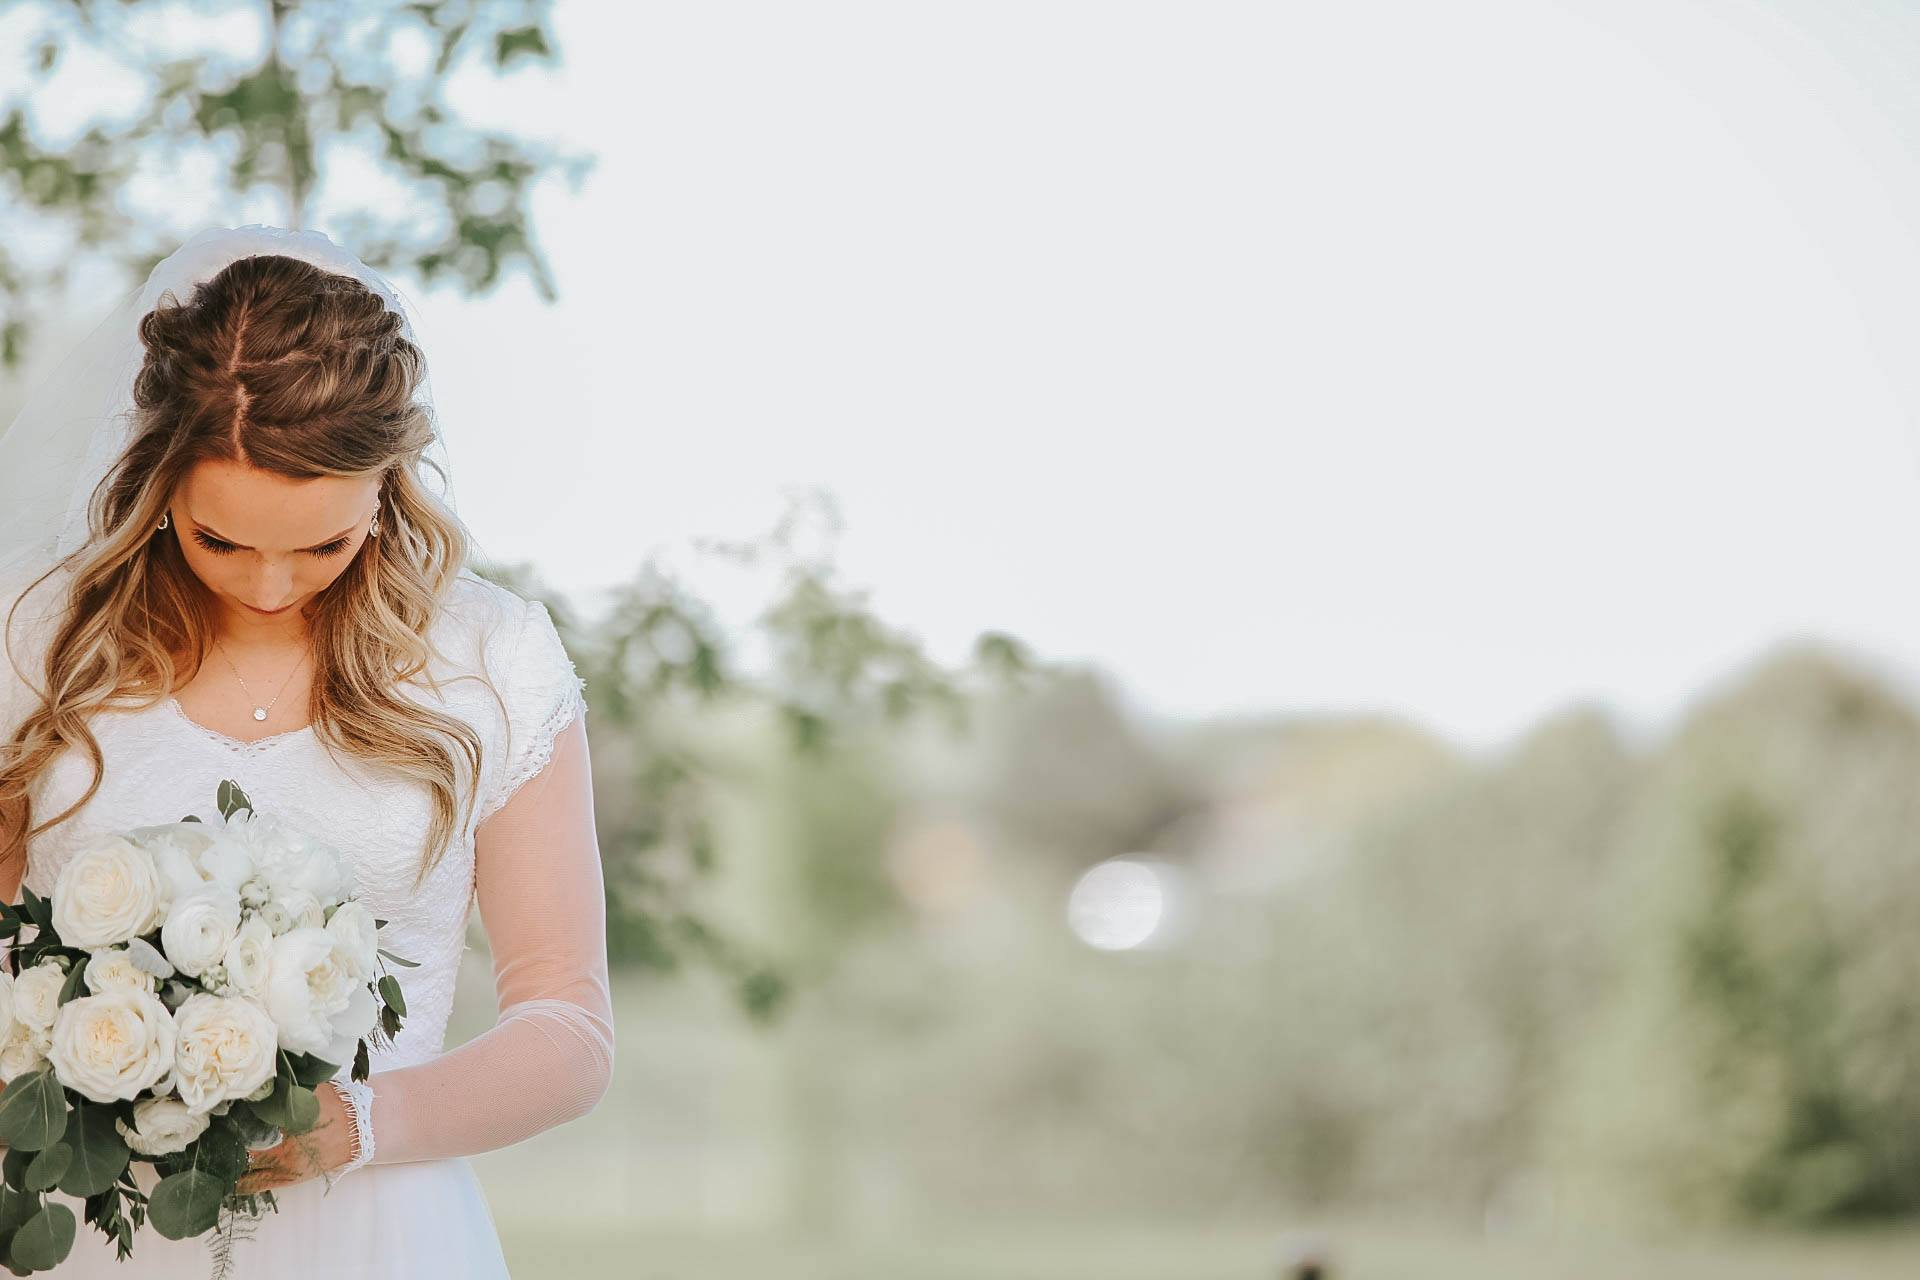 Ranch Wedding: Inspirations and Advice